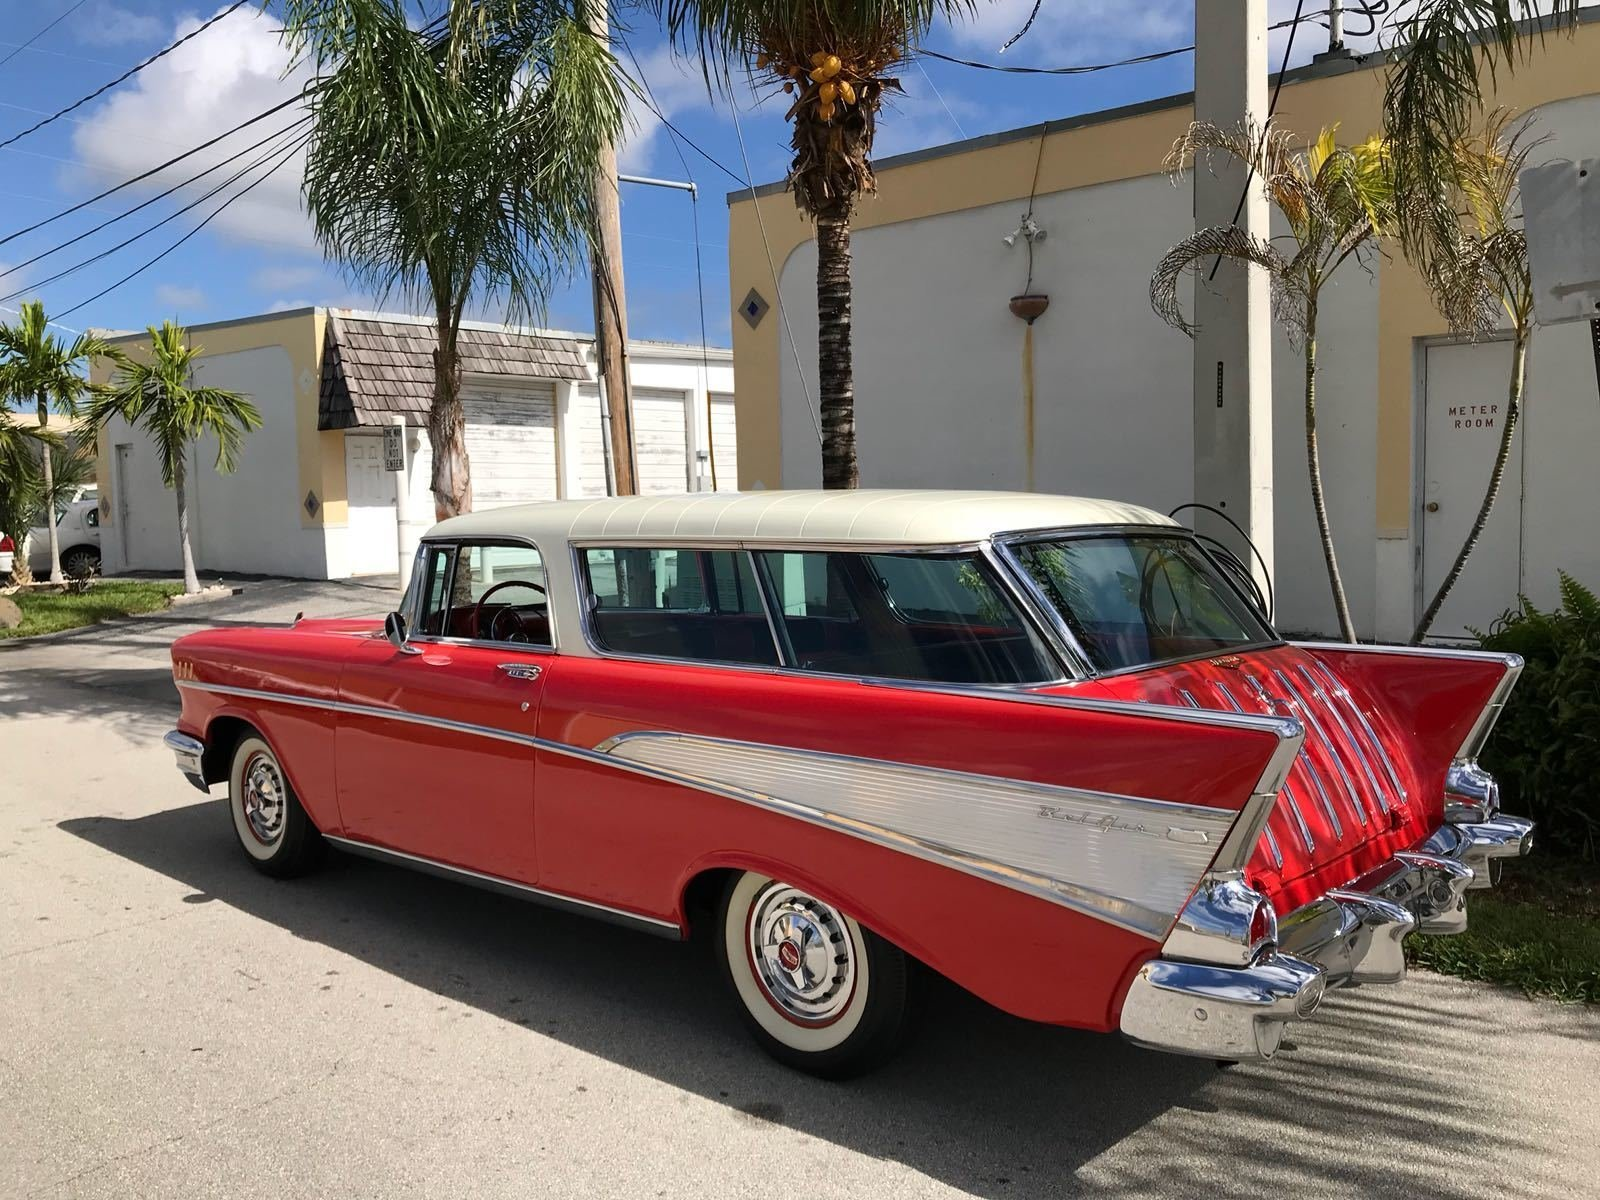 1957 Chevrolet Nomad Station Wagon For Sale 105484 Mcg Chevy